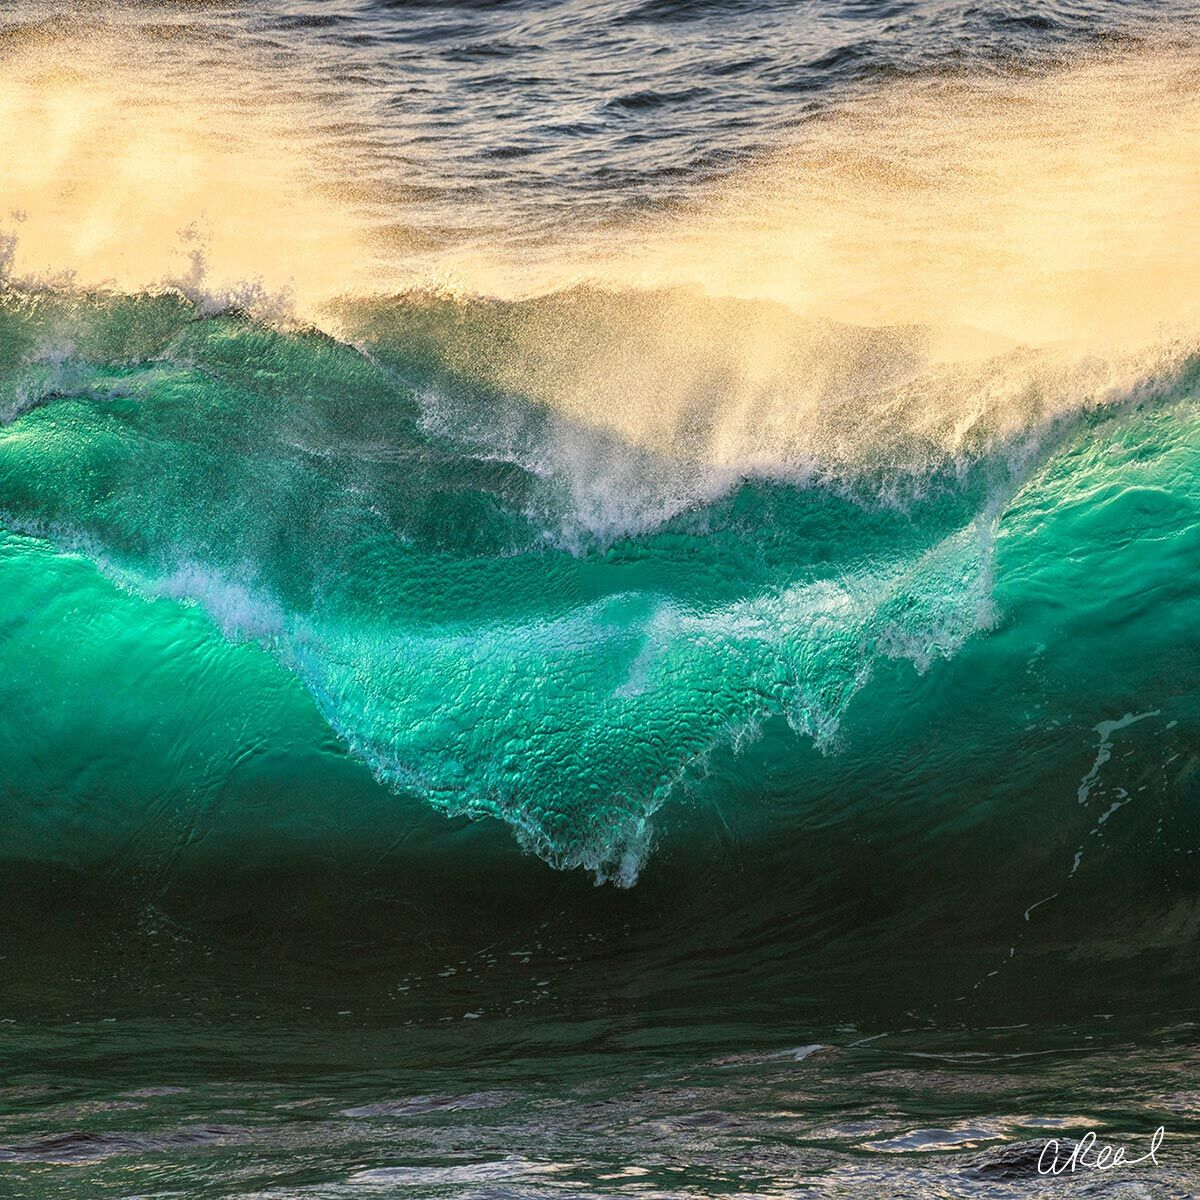 A fine art photograph of an emerald colored crashing wave in Big Sur, California.